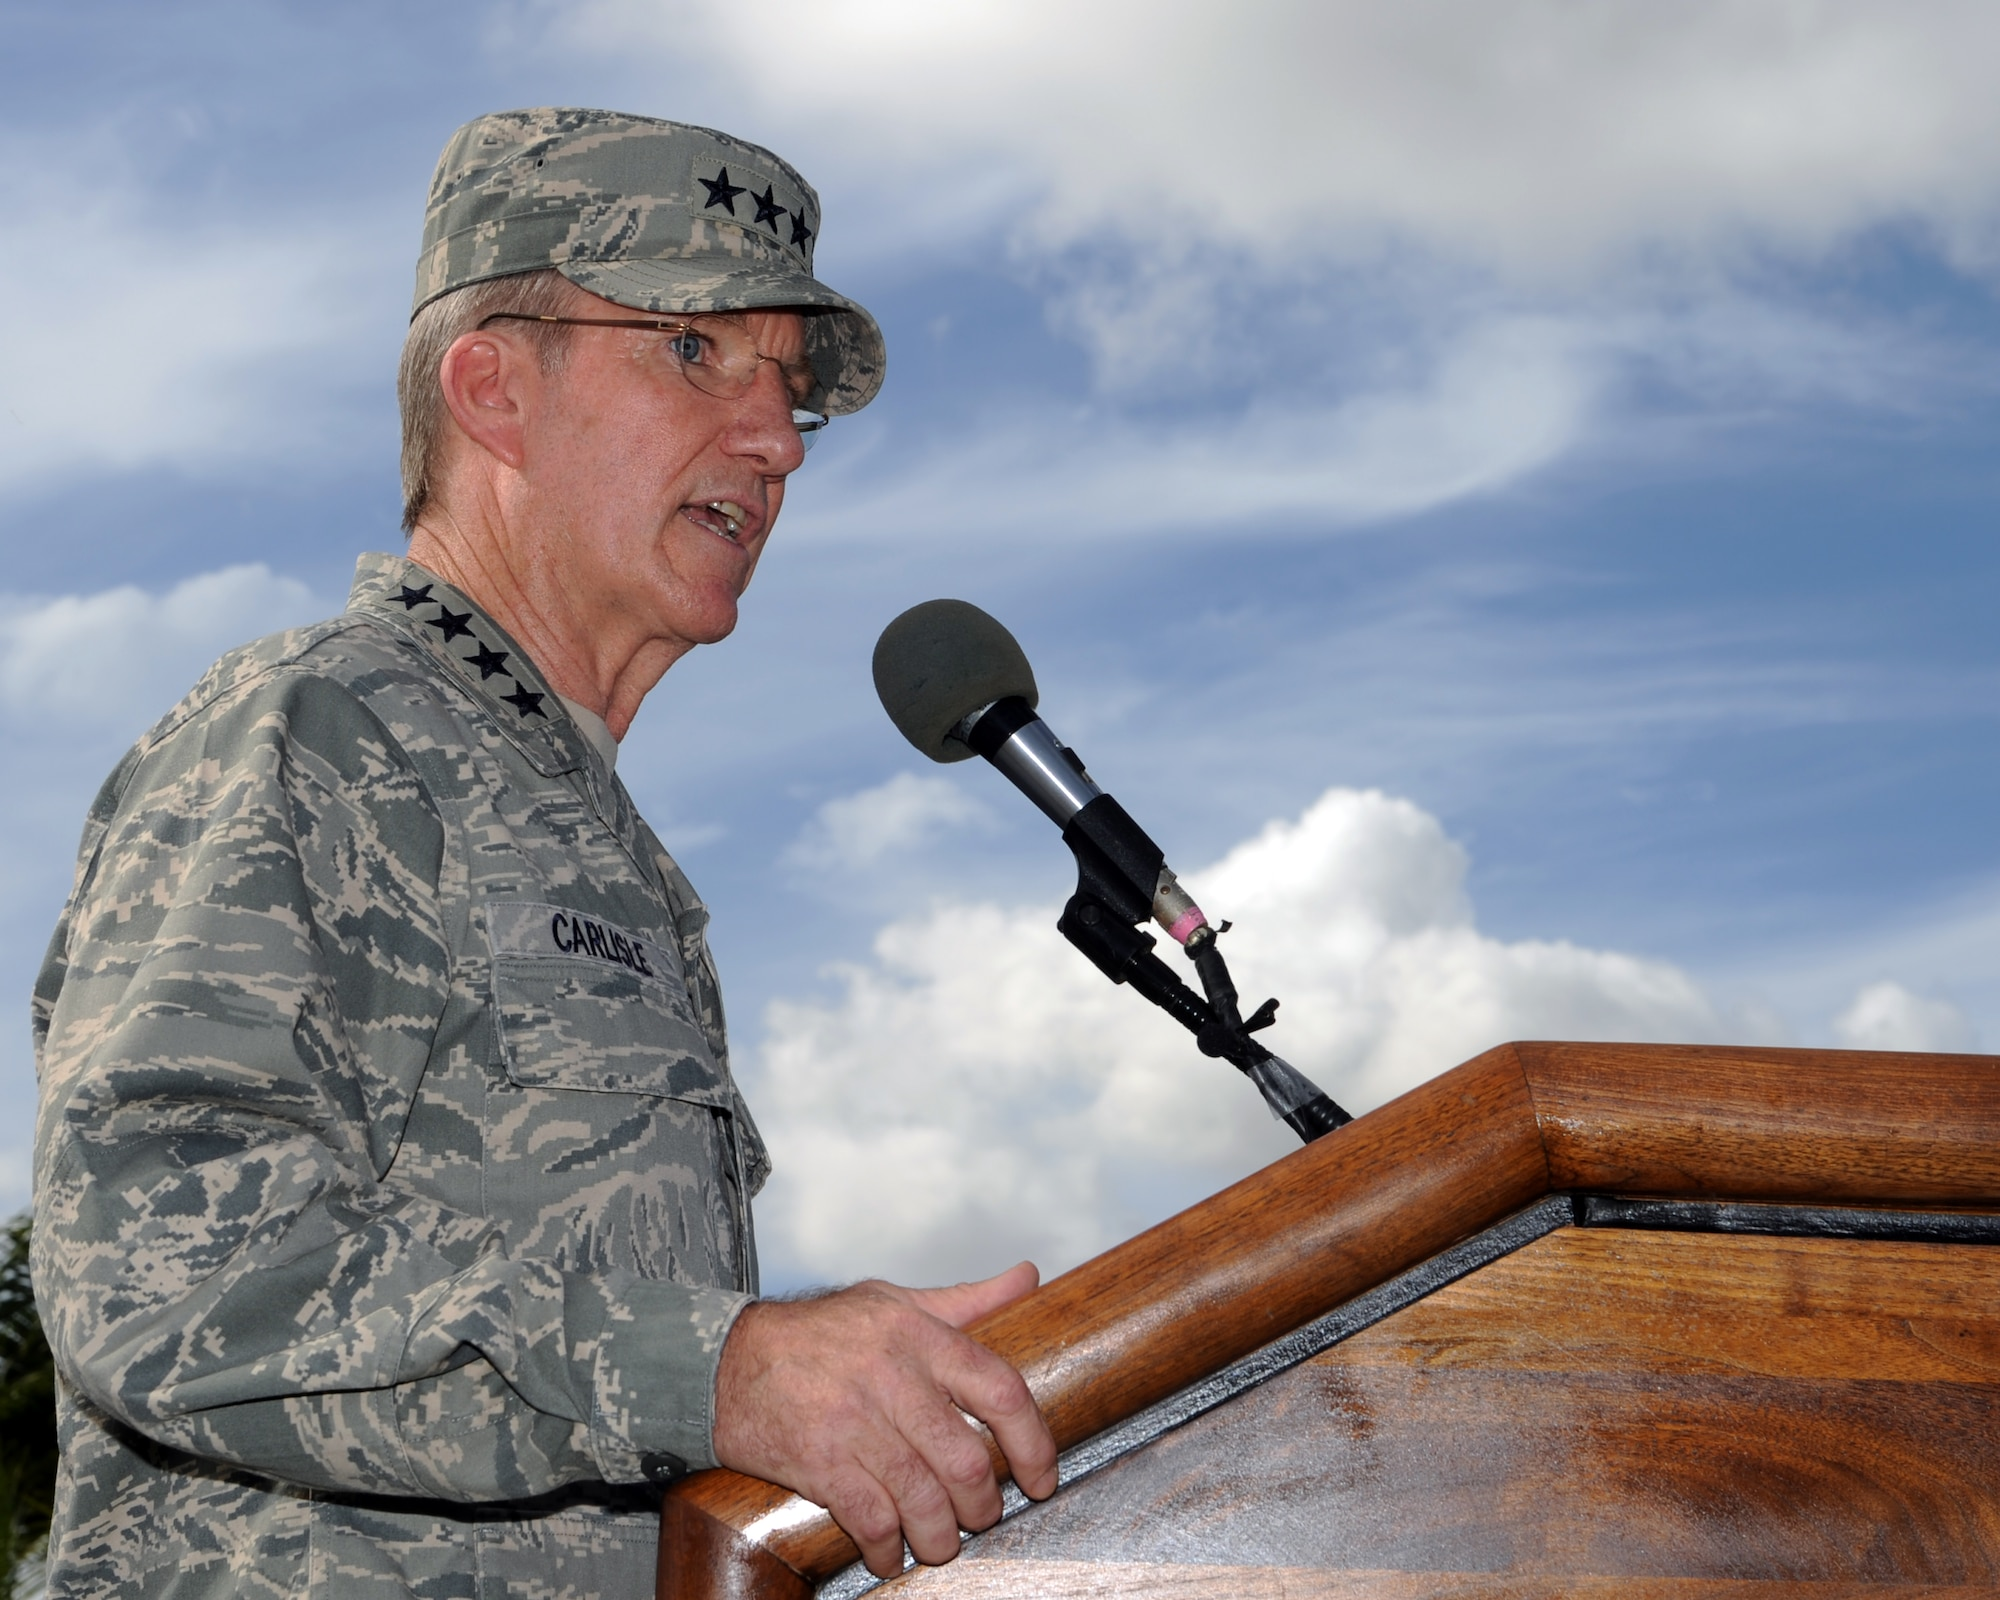 """Gen. Herbert J. """"Hawk"""" Carlisle, Pacific Air Forces commander, delivers a speech during the 13th Air Force inactivation ceremony Sept. 28 at Joint Base Pearl Harbor-Hickam, Hawaii. (U.S. Air Force photo/Staff Sgt. Nathan Allen)"""